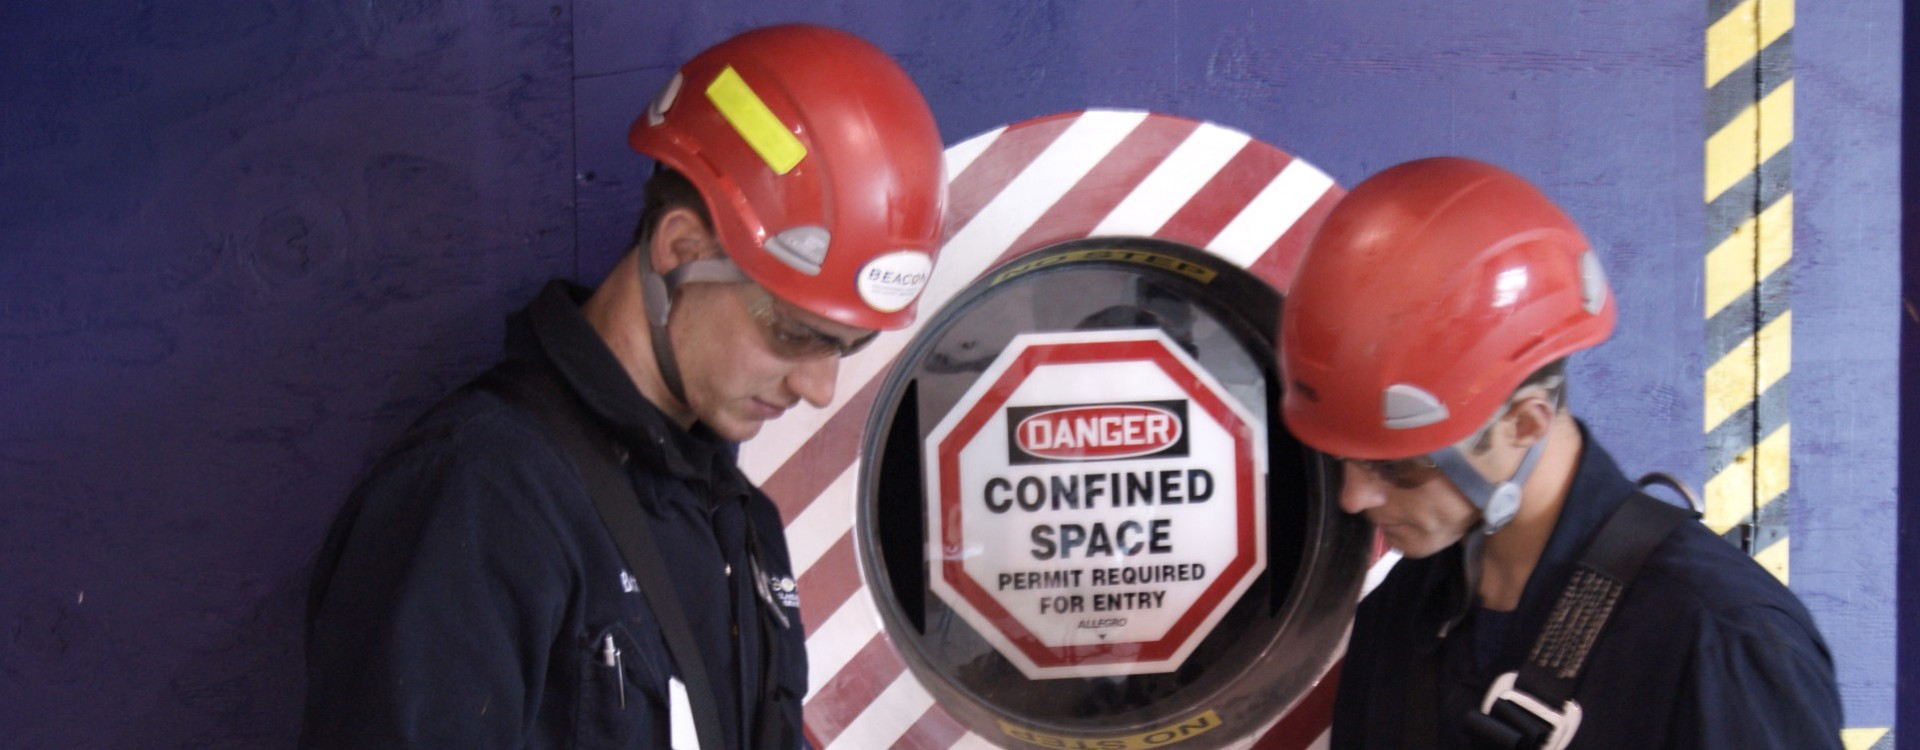 Confined Space Entry Training (NSTC & OSHA Version)